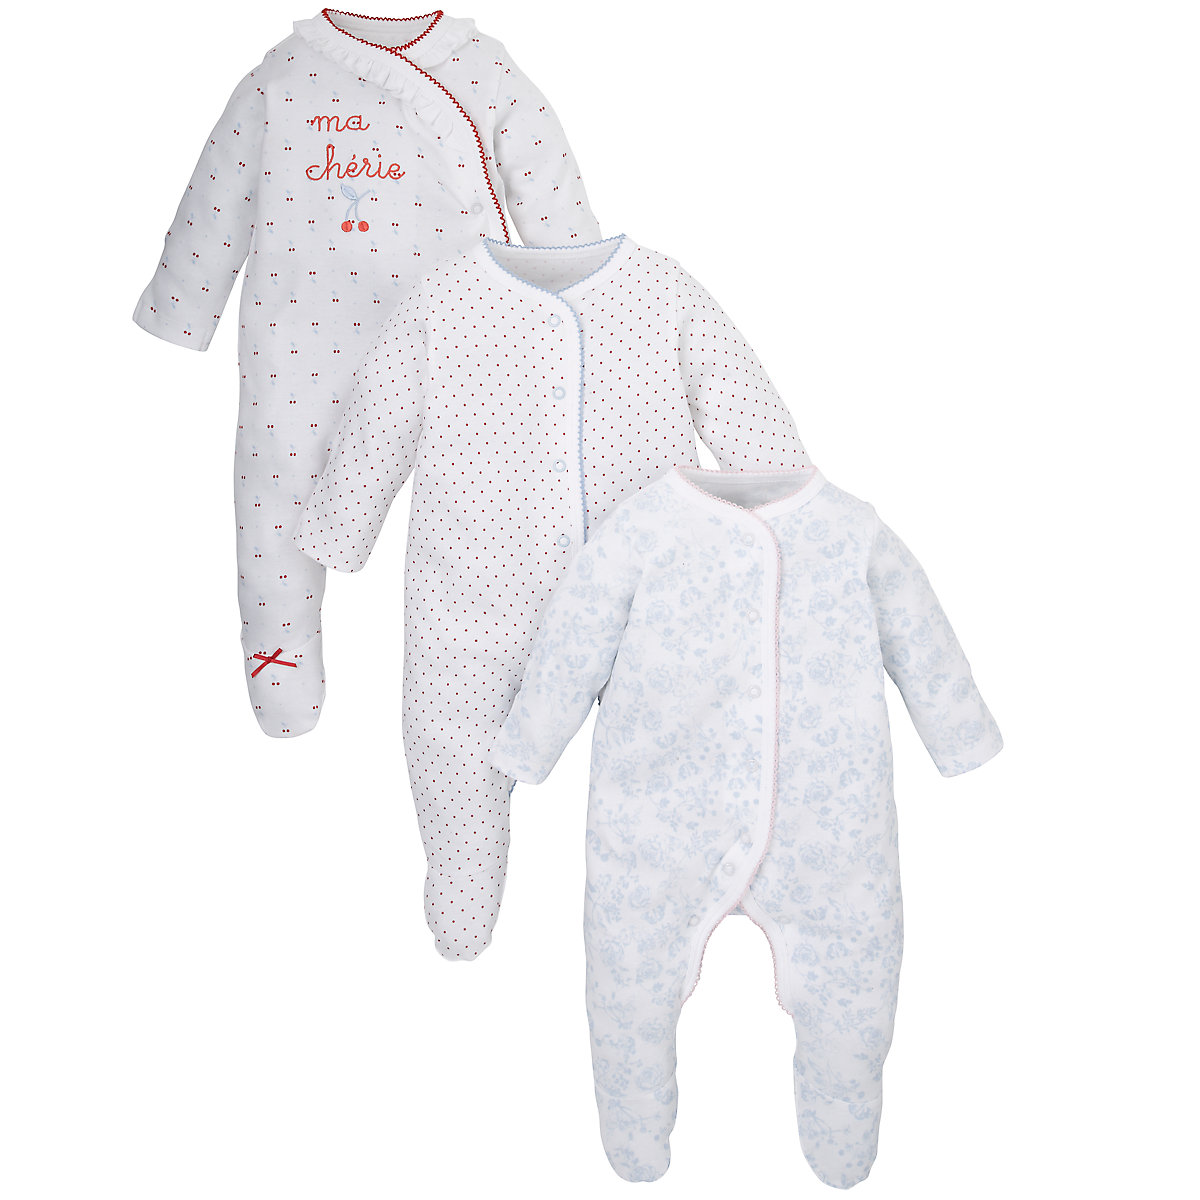 Mothercare Newborns Cherry Sleepsuits - 3 Pack Size 12-18